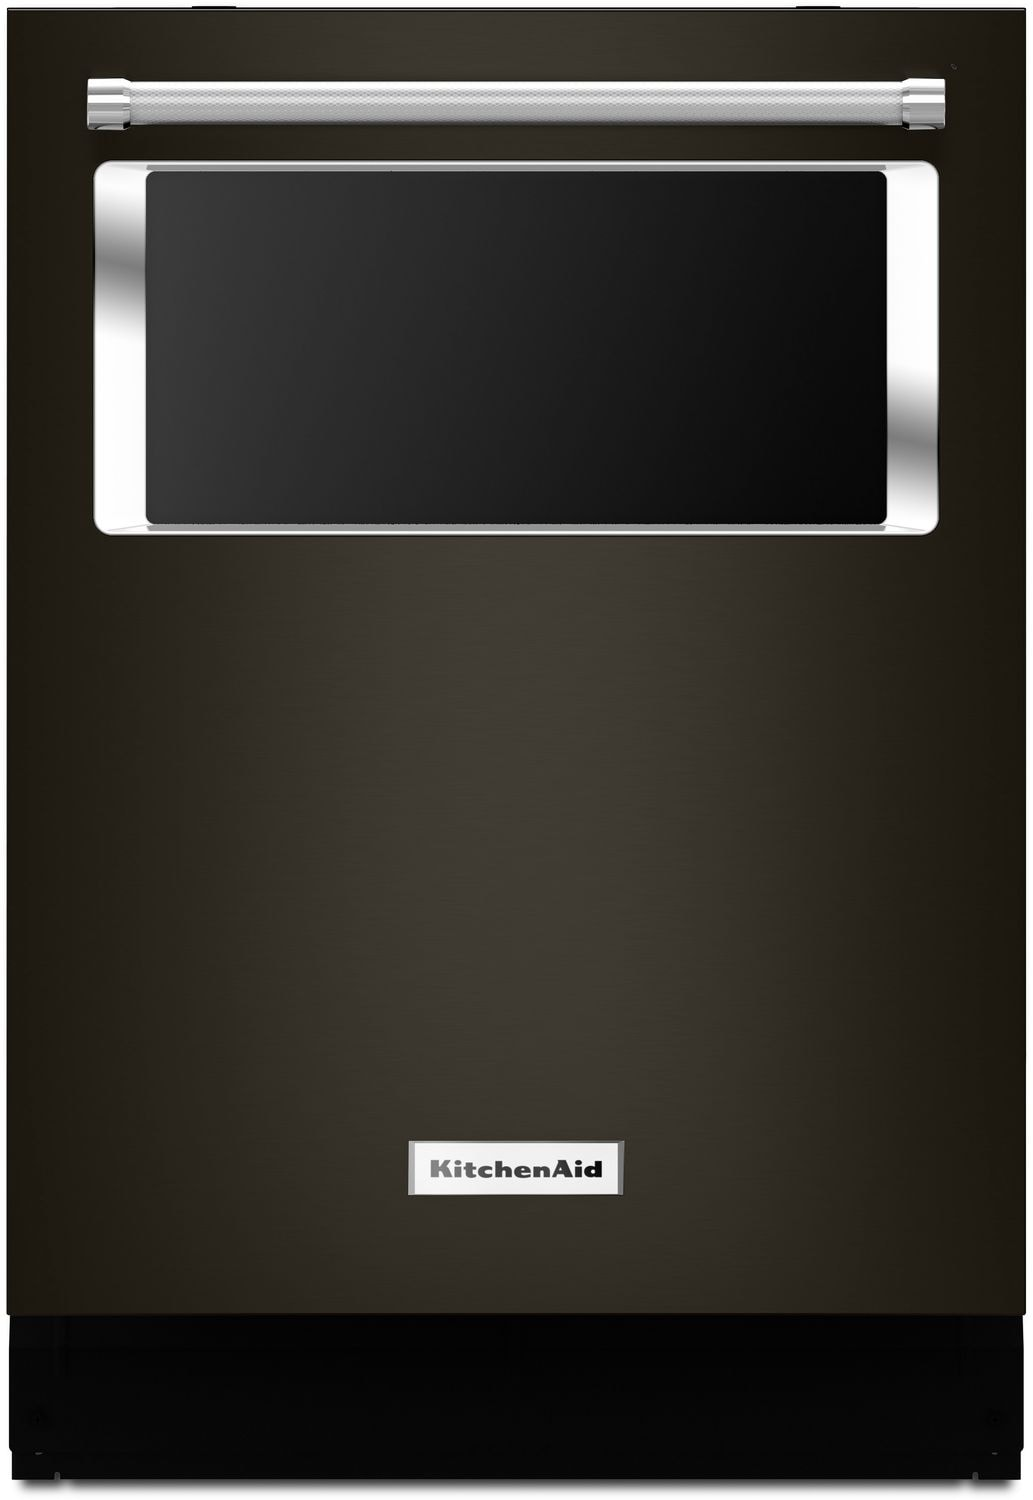 KitchenAid Built-In Dishwasher with Window – KDTM384EBS